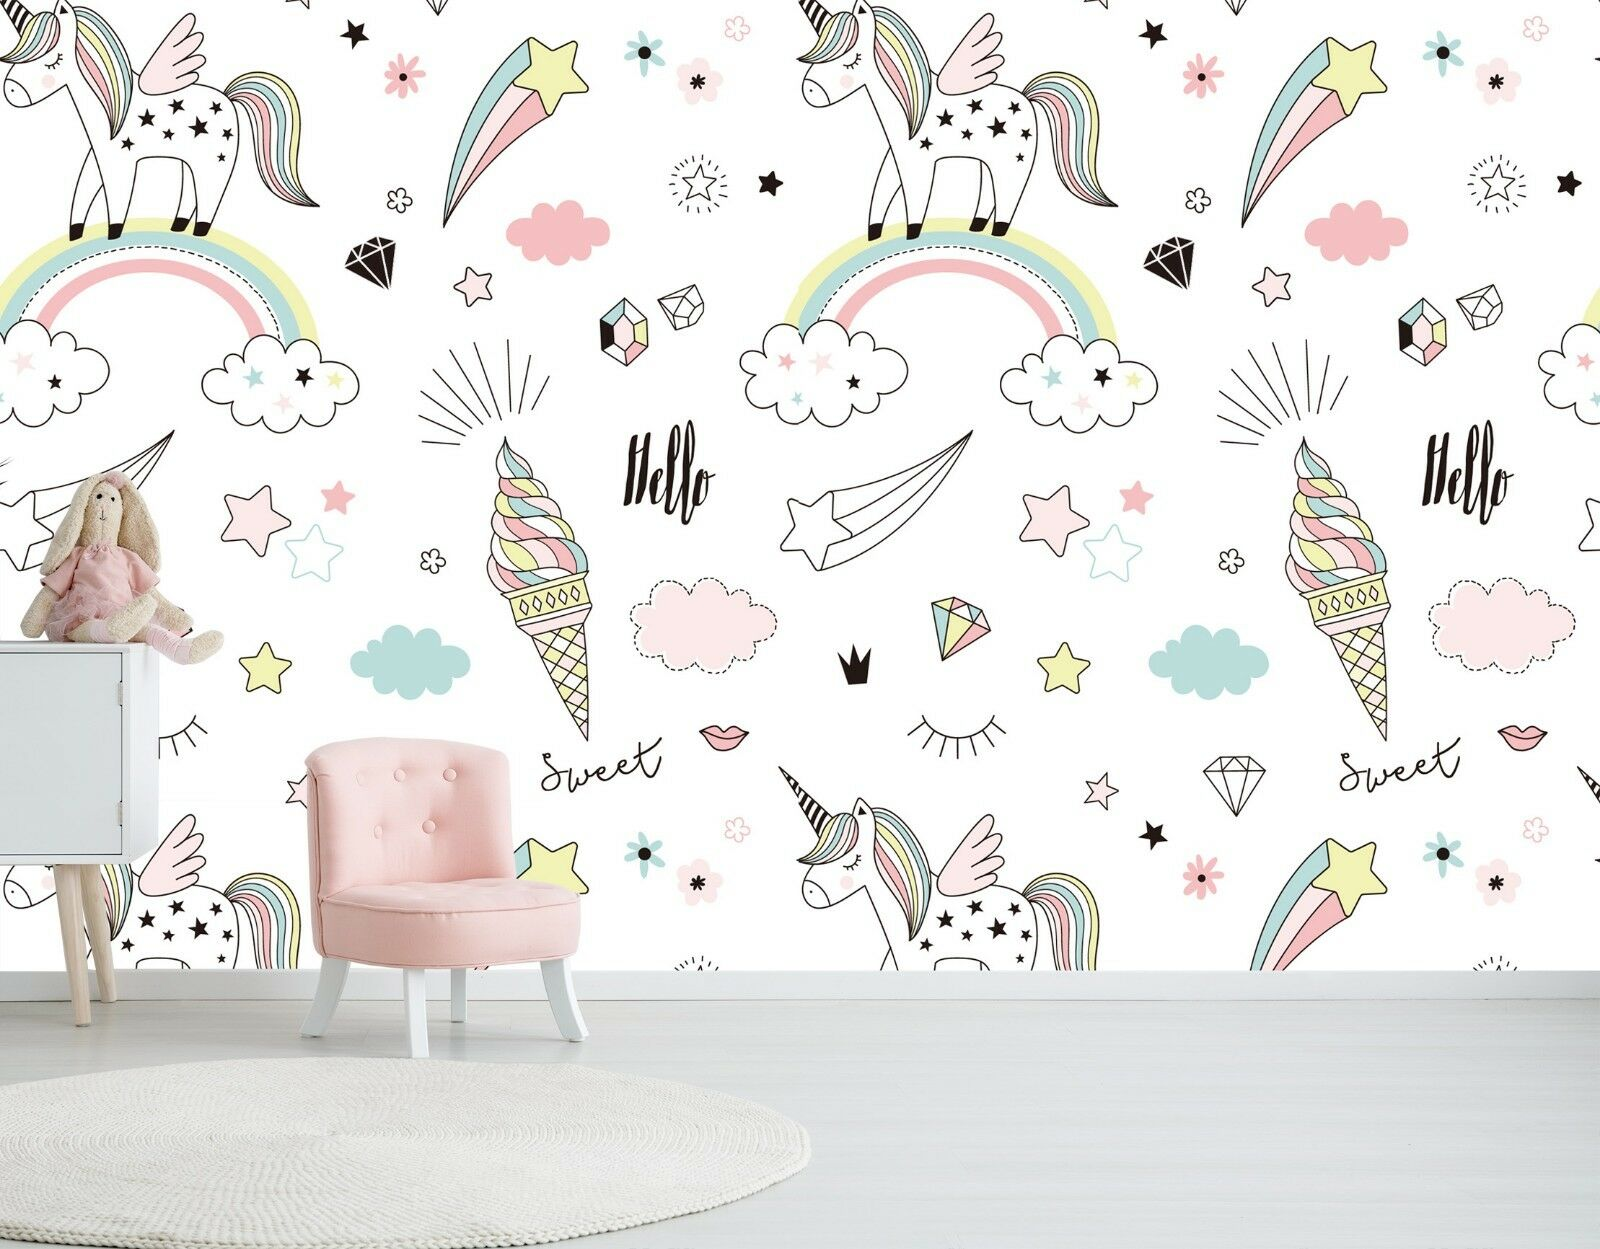 3D Ice Cream Unicorn 55 Wall Paper Wall Print Decal Wall Deco Indoor Wall Murals